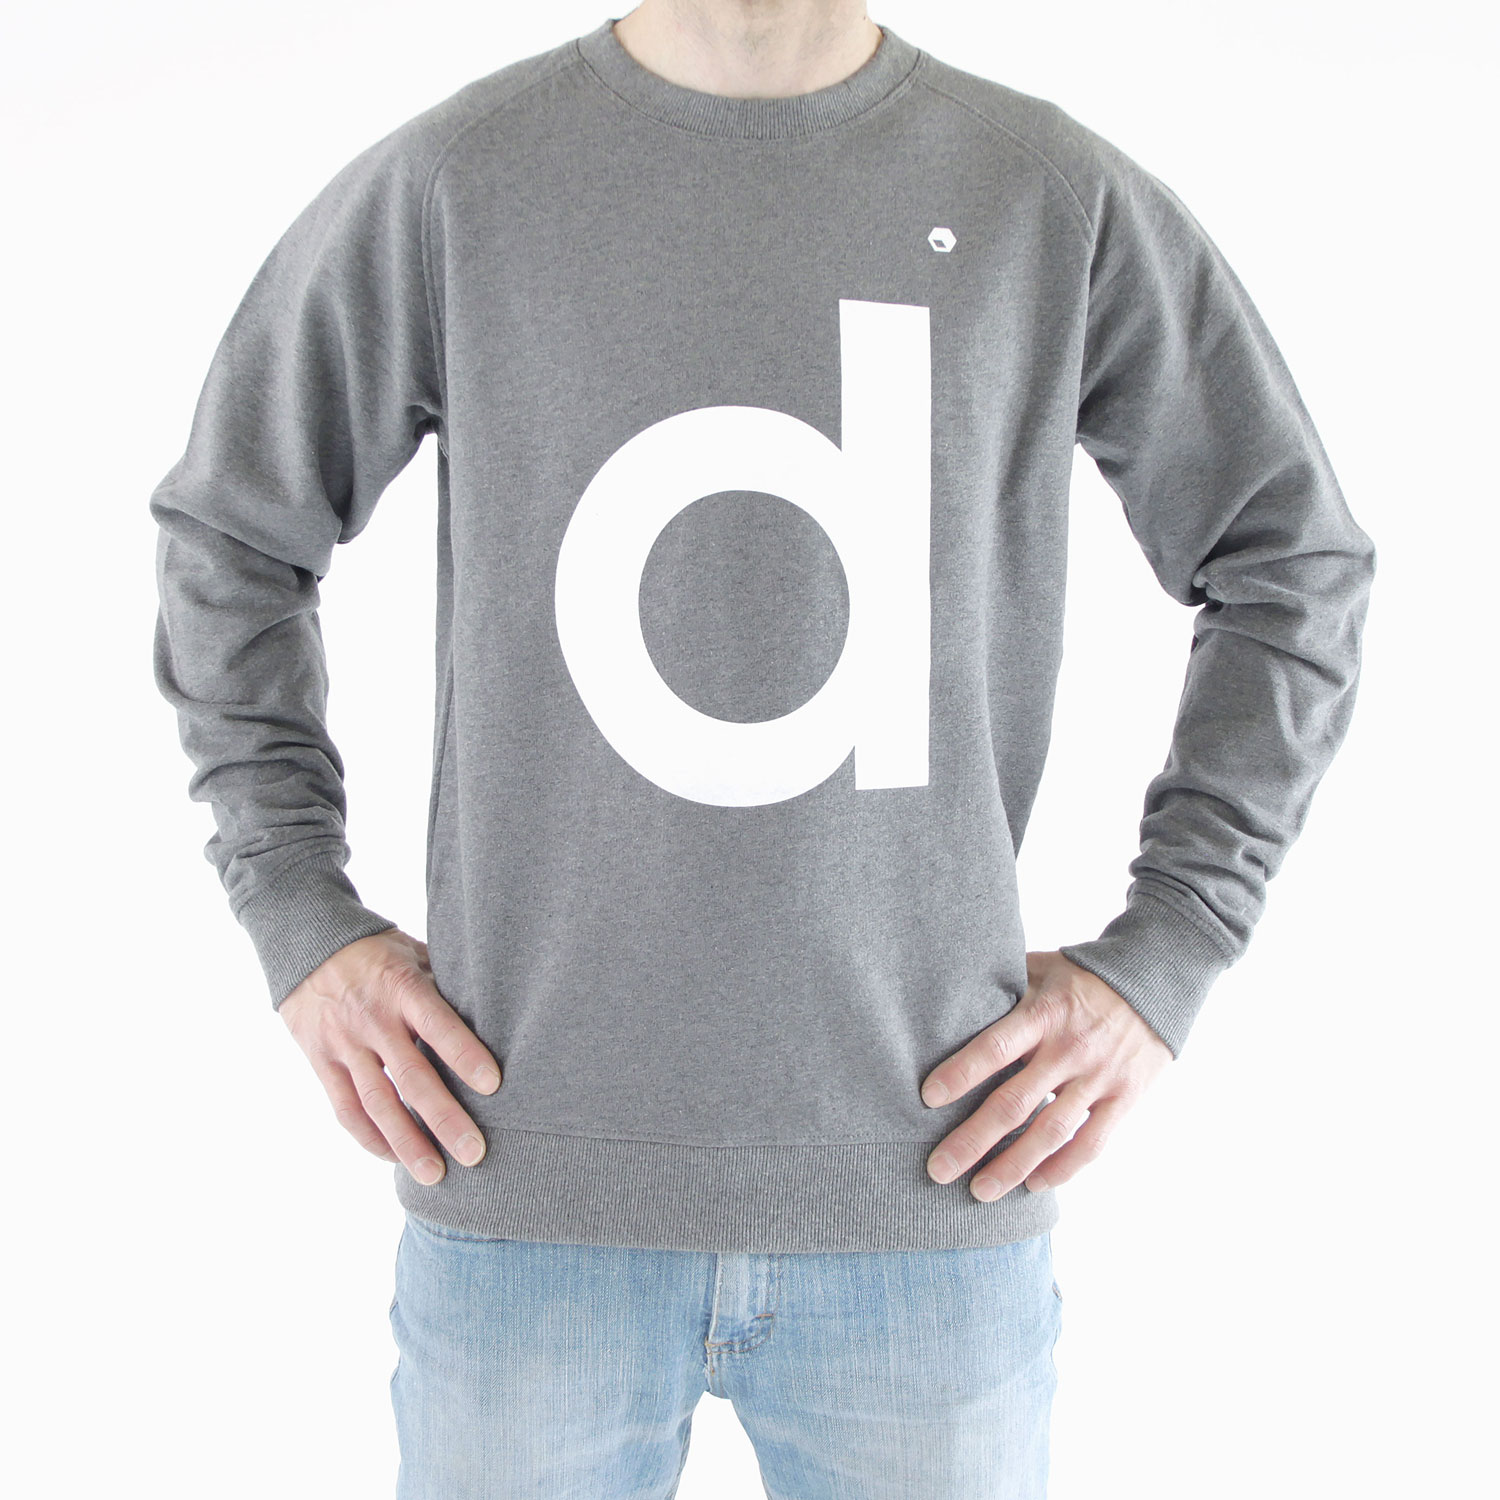 Flathold-apparel-sweat-d-grey_2